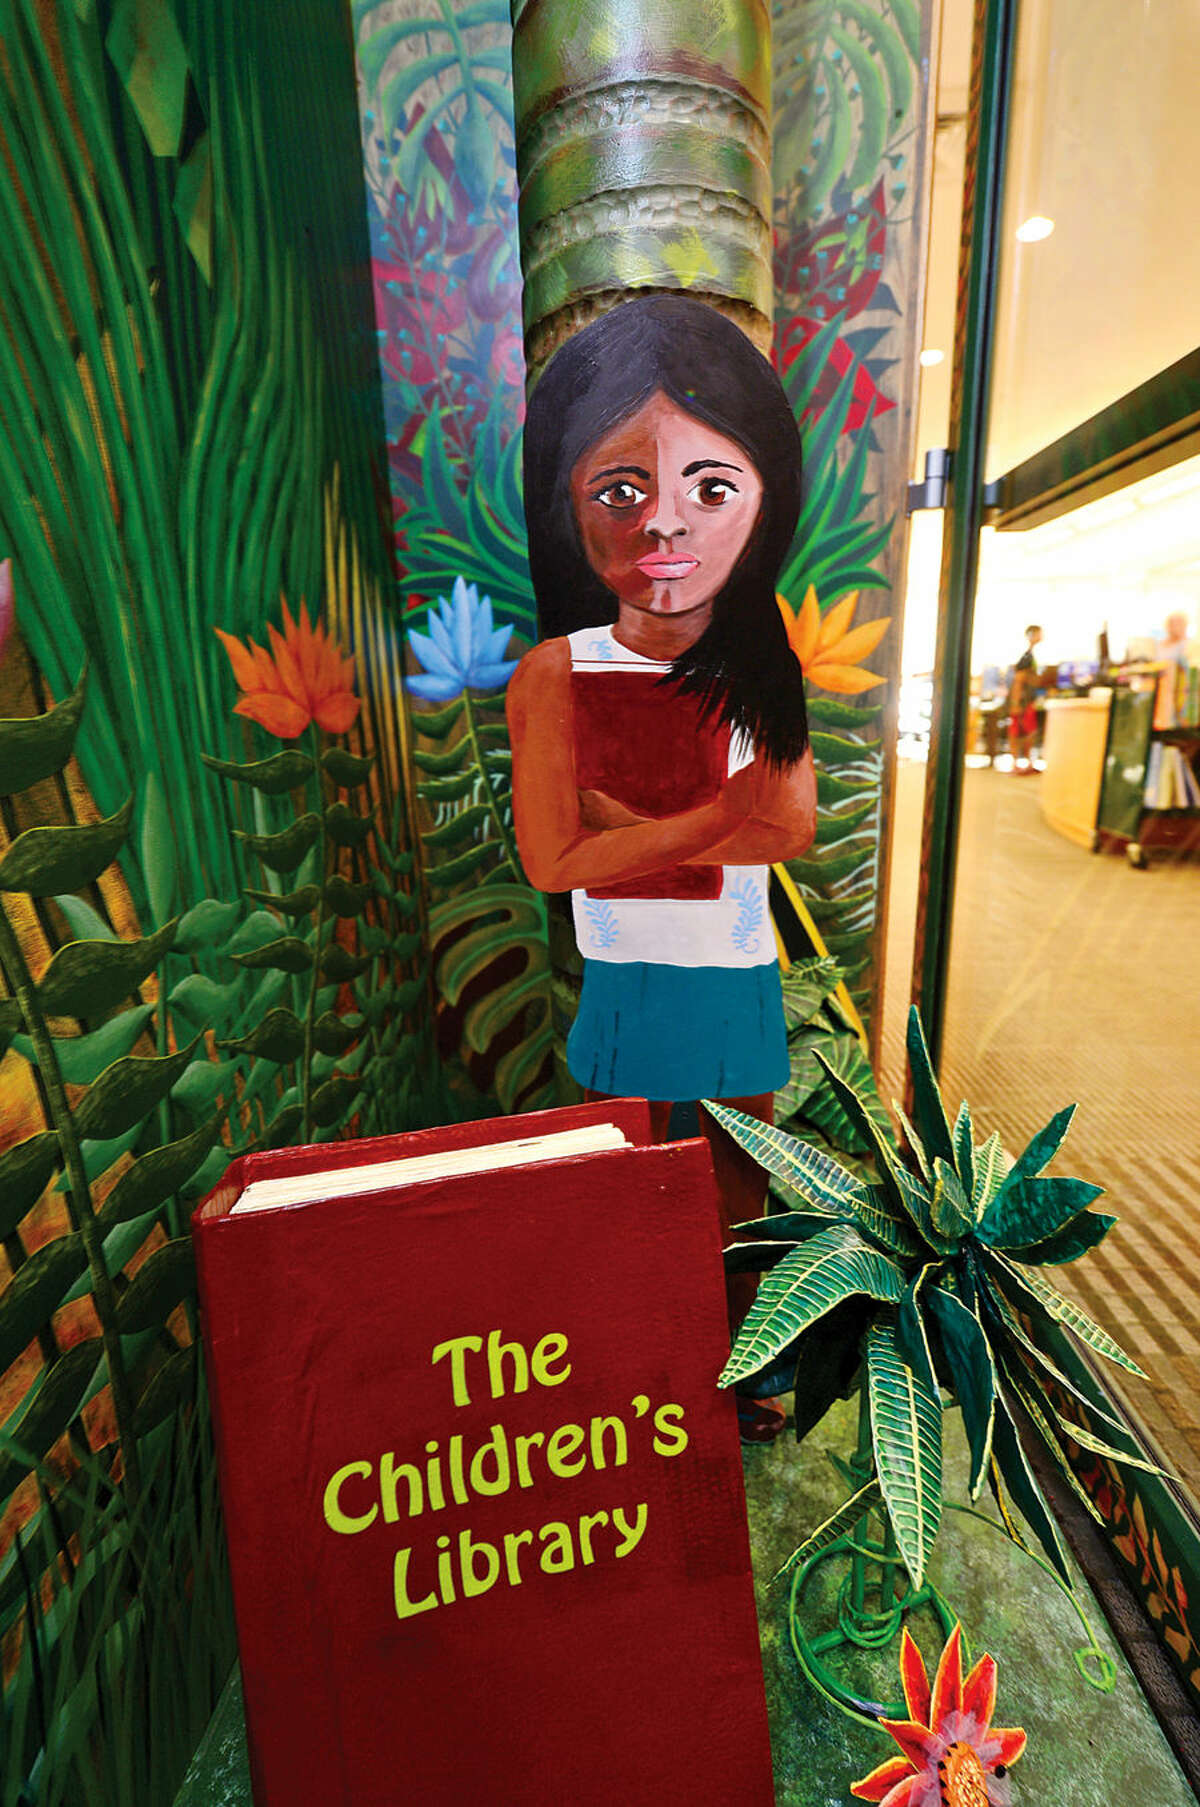 Wilton Library held a ribbon cutting ceremony Thursday evening for the newly decorated entrance to the Children's Library.